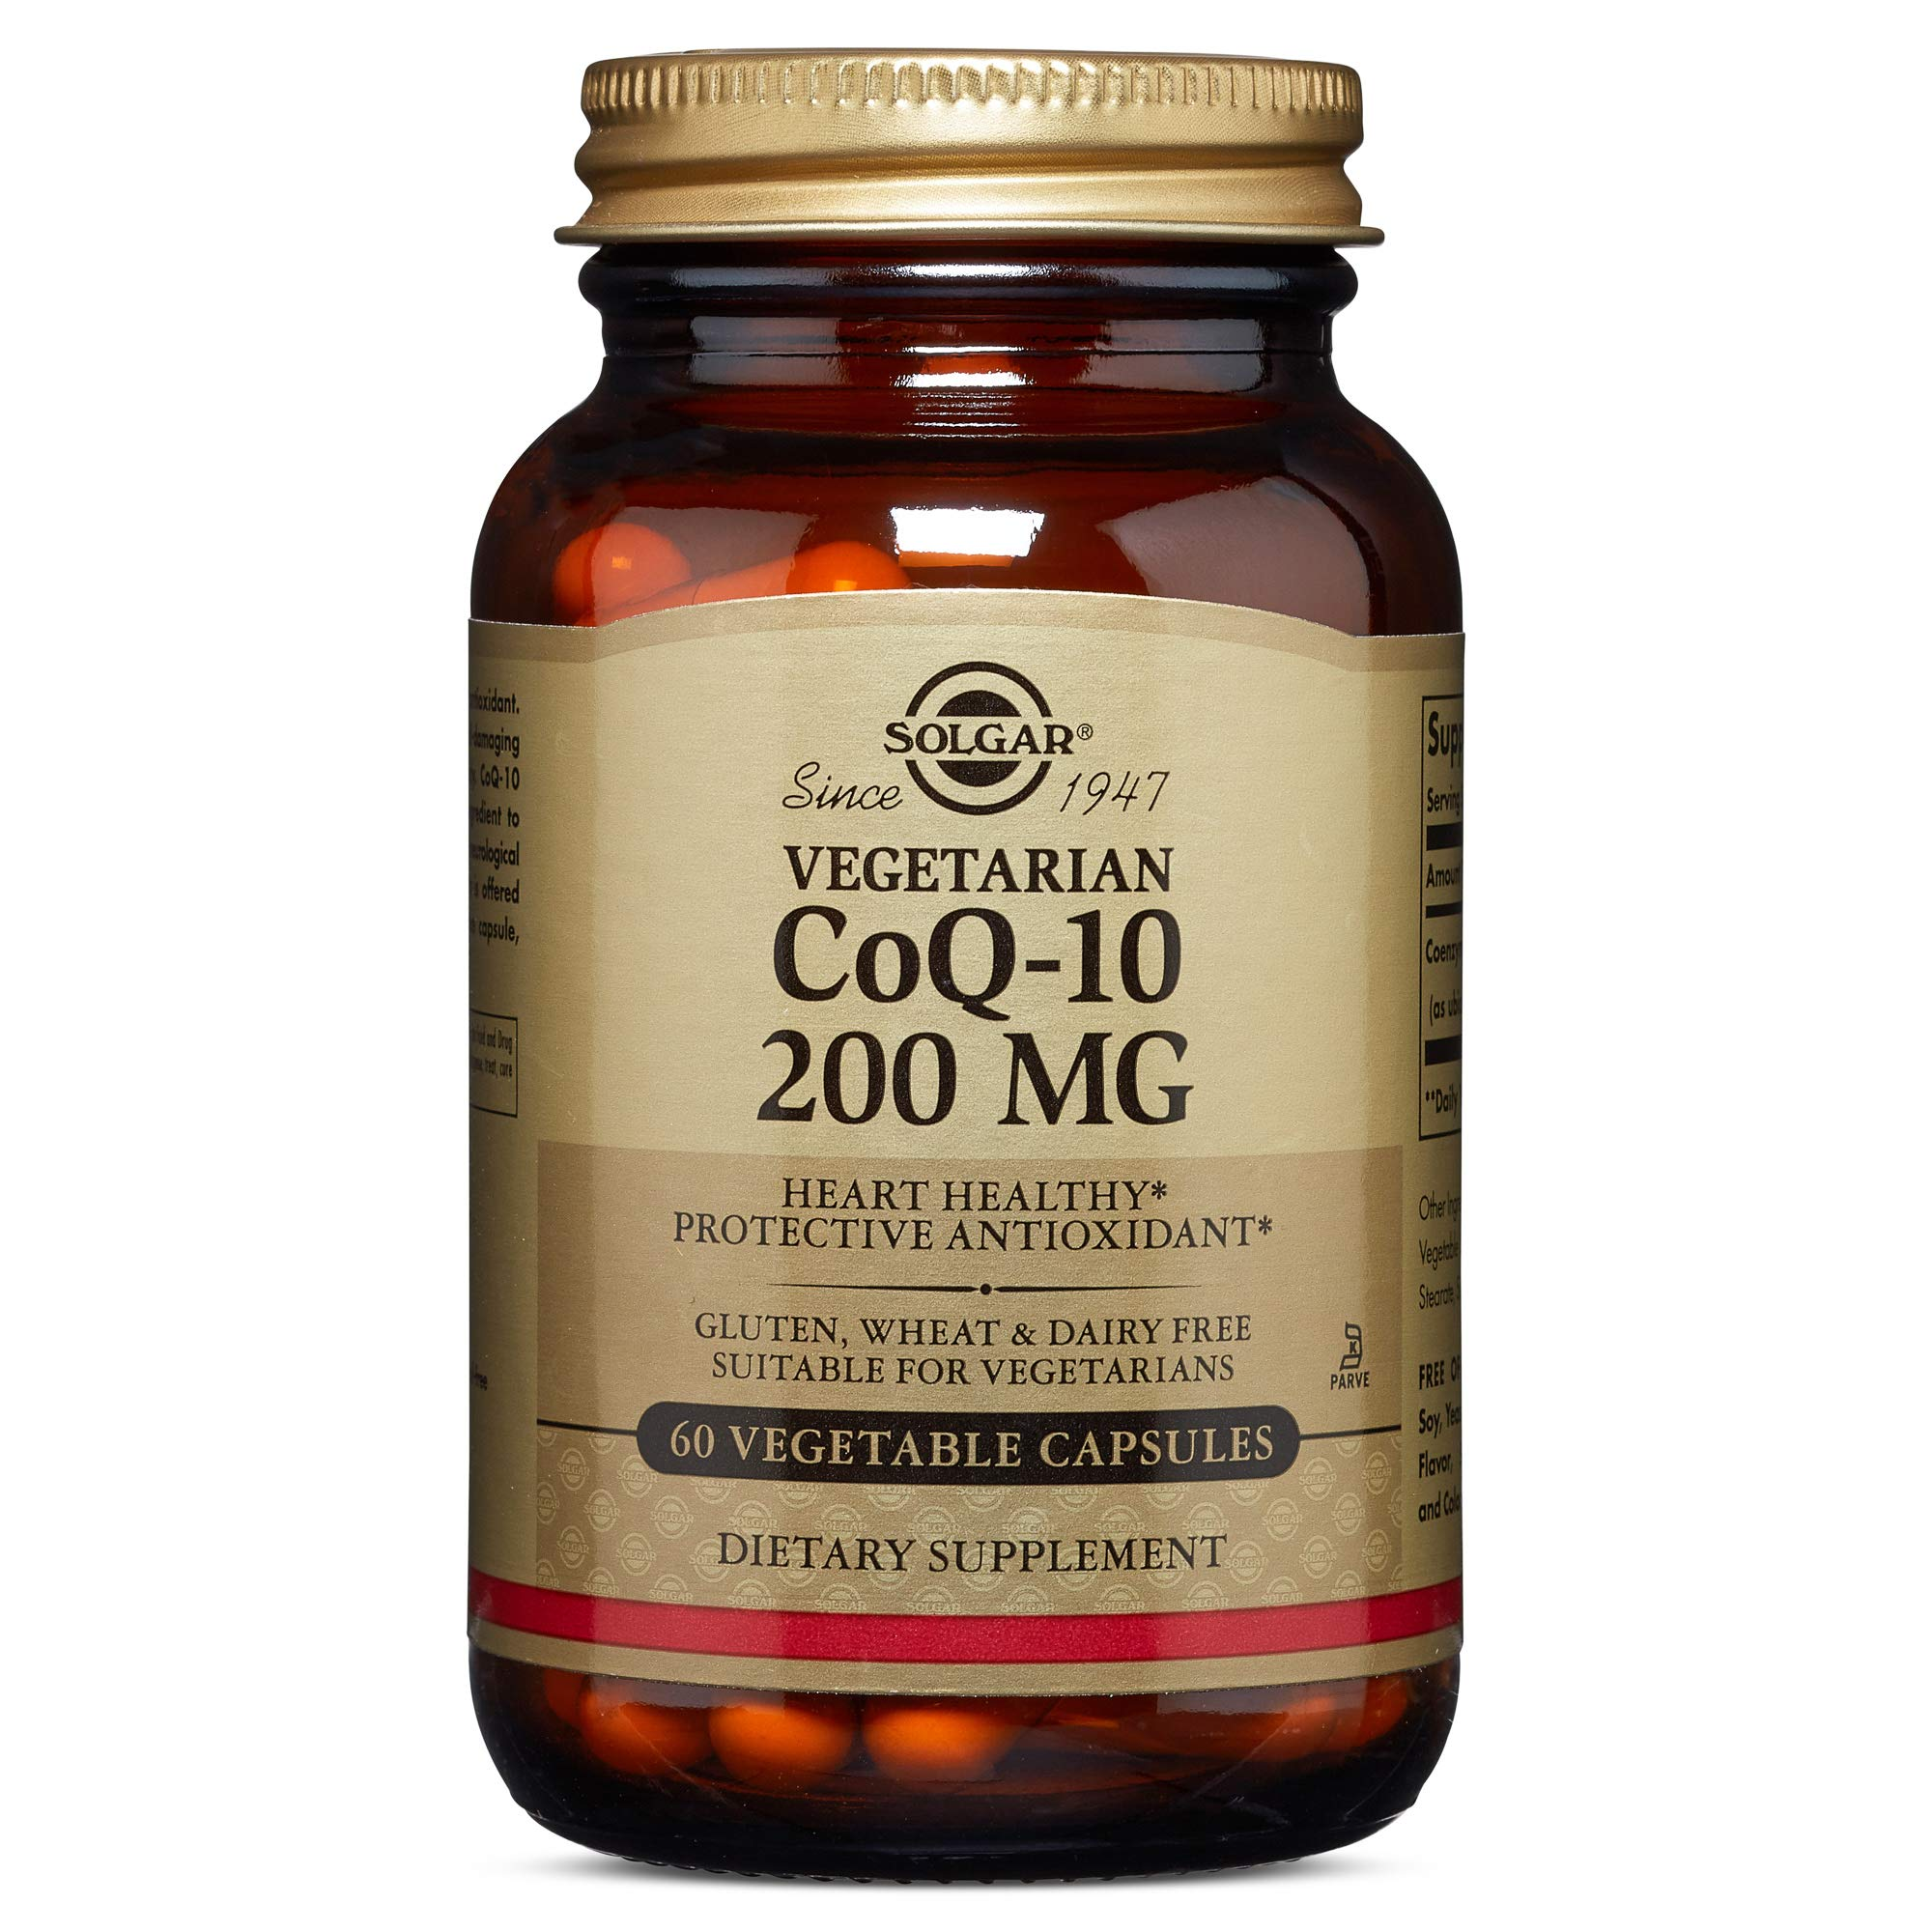 Solgar - Vegetarian CoQ-10 200mg, 60 Vegetable Capsules - Supports Healthy Aging